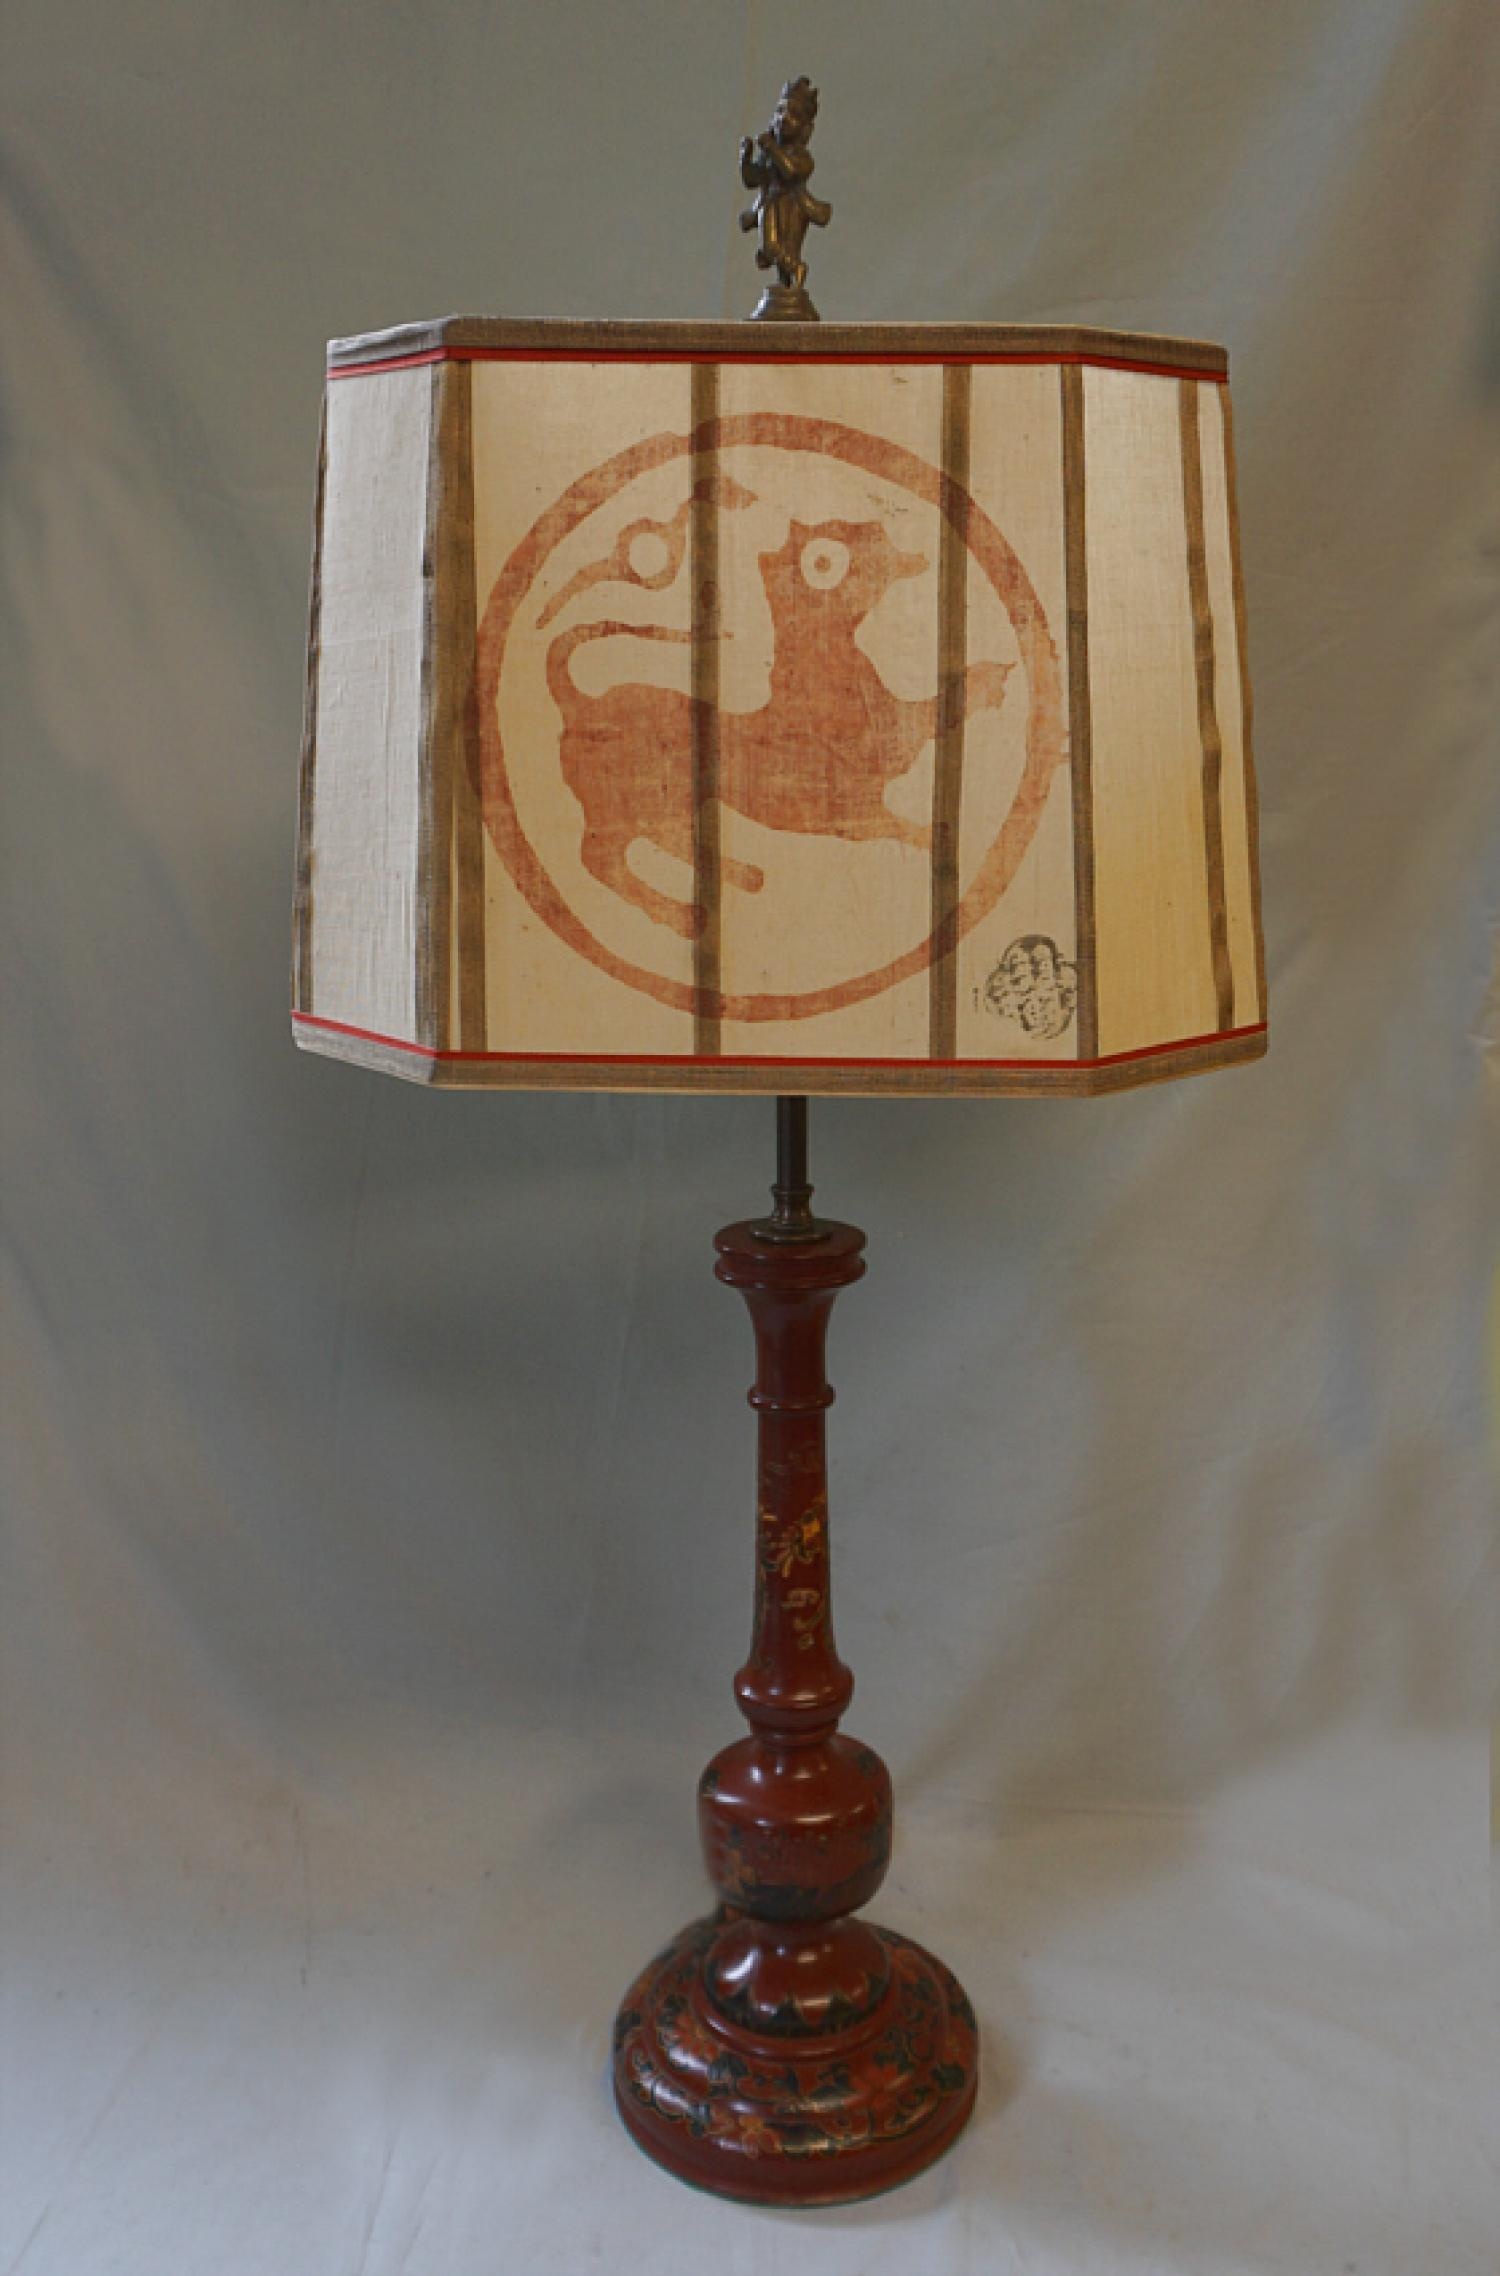 Vintage Chinese red lacquer lamp with wood block shade c1920